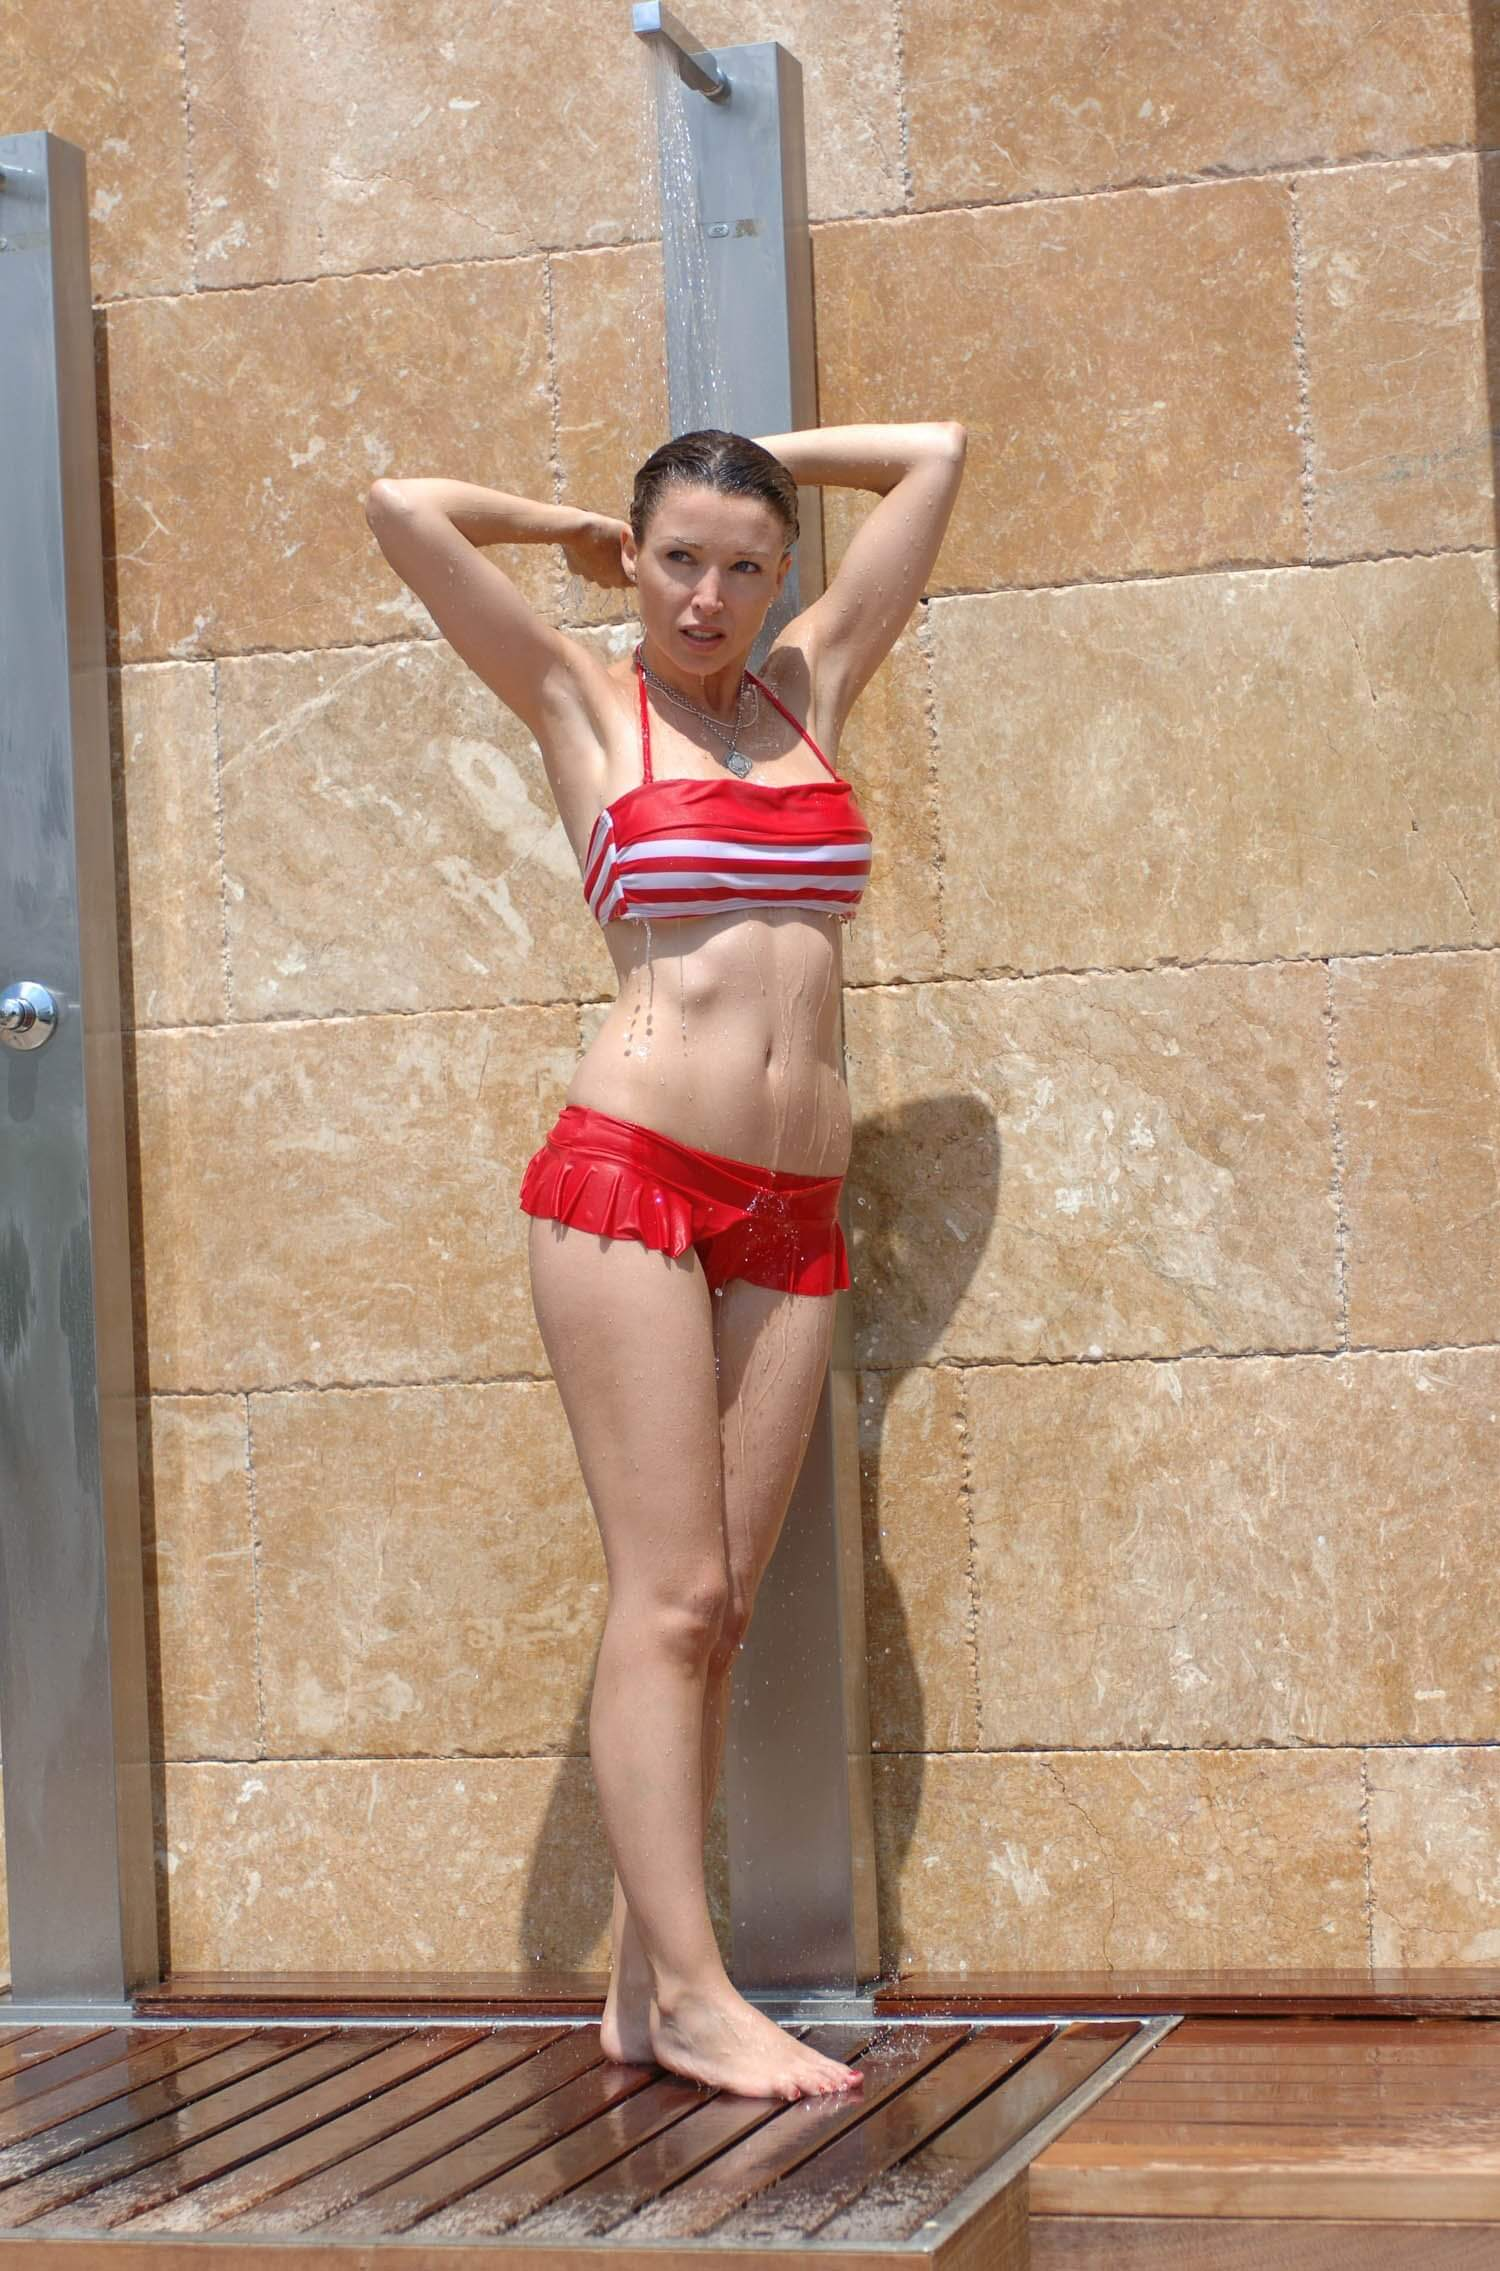 dannii minogue sexy bikini photos